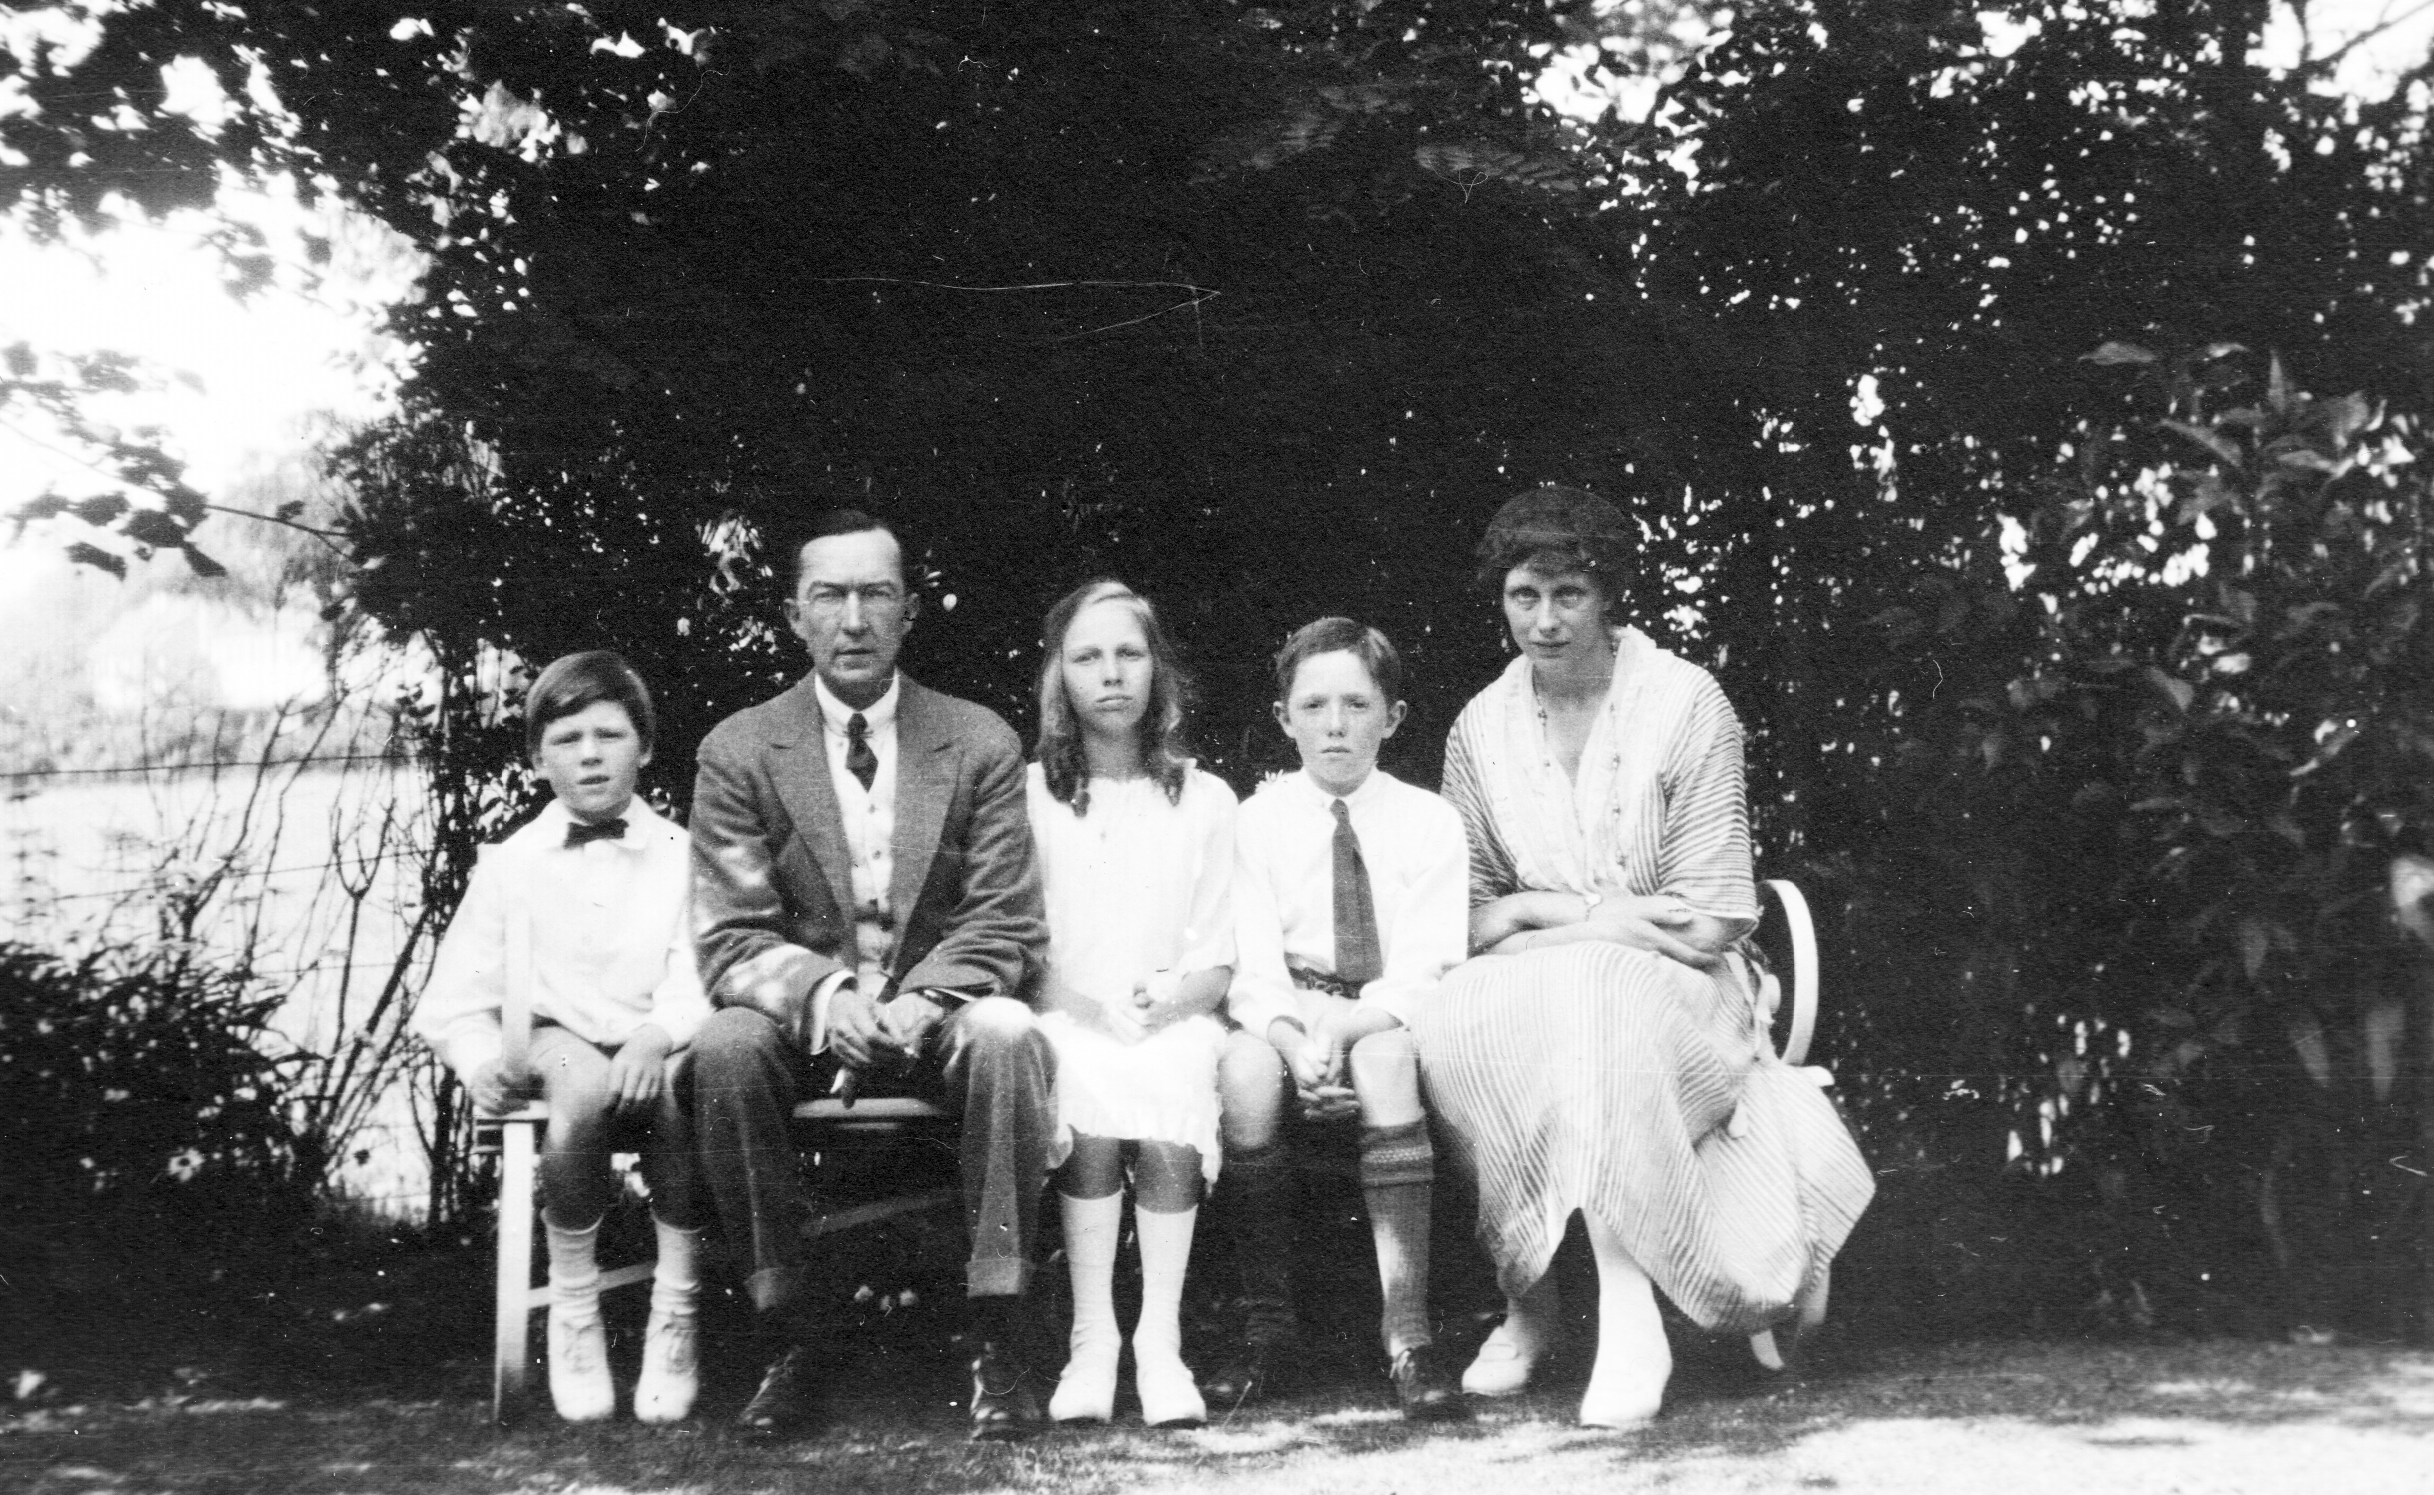 1922 Morgan, Harry, Eleanor, Frank and Nora